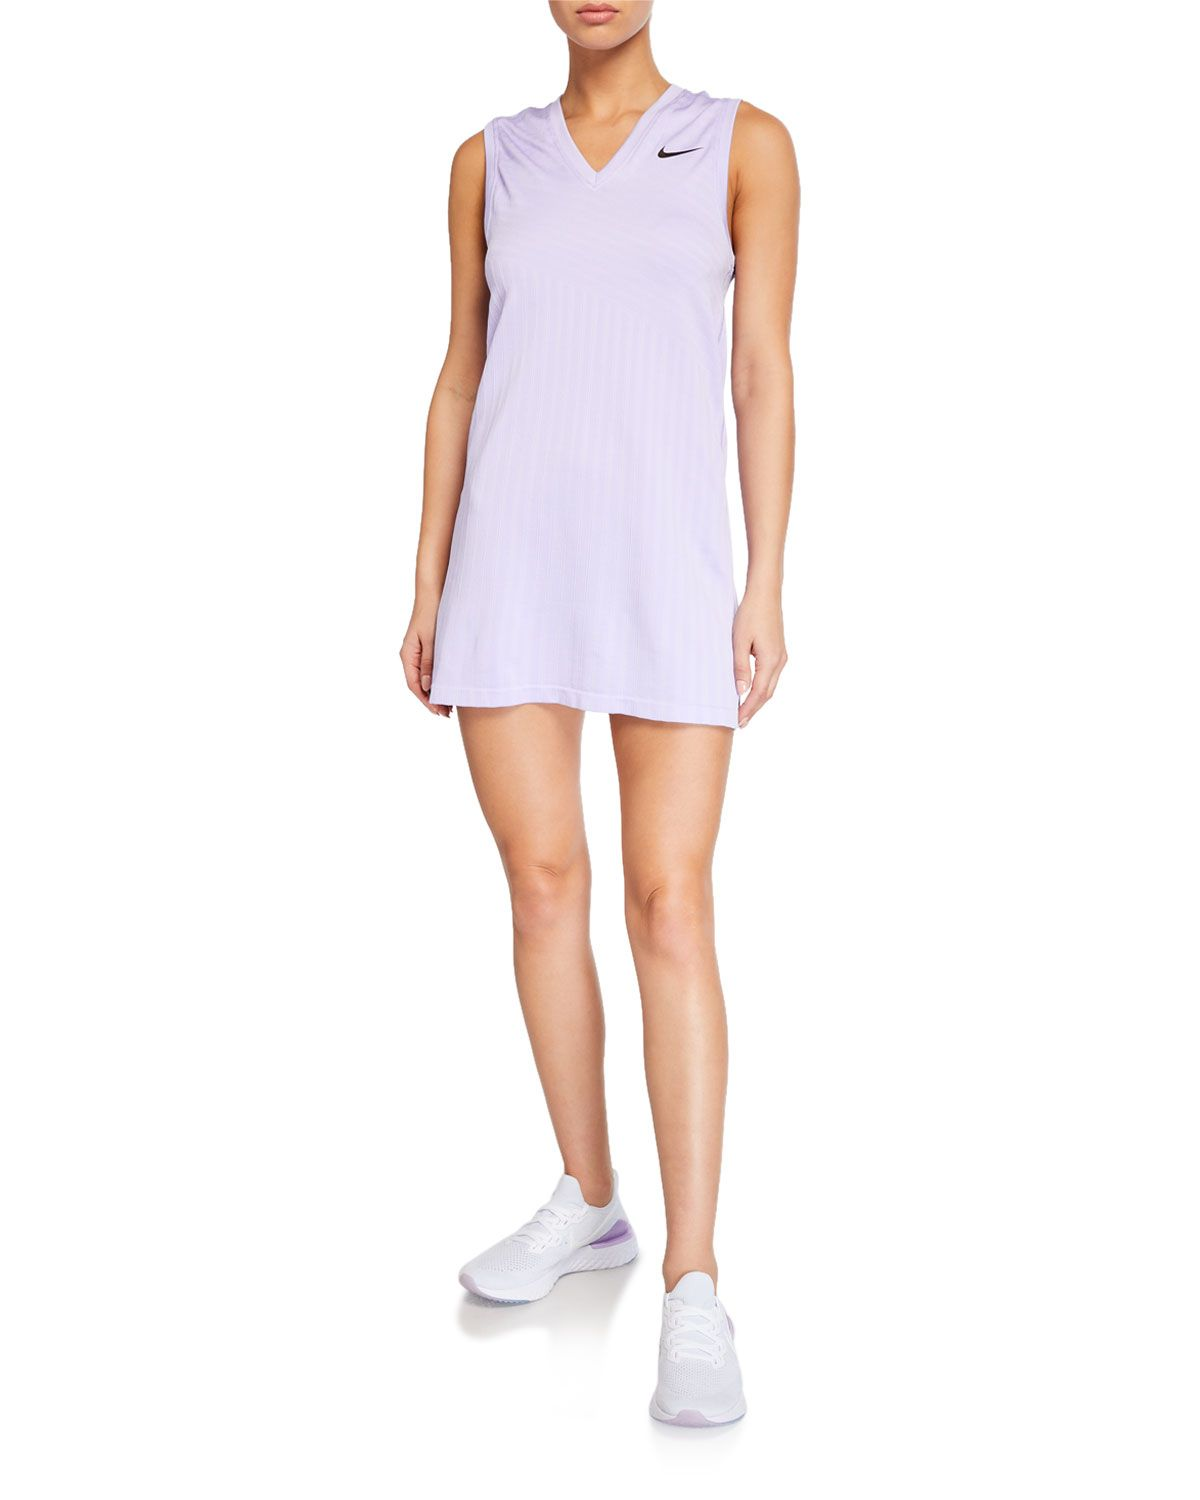 Nike X Maria Sharapova Knit V Neck Tennis Dress Nike Cloth Nike Tennis Dress Tennis Dress Sharapova Tennis Dress